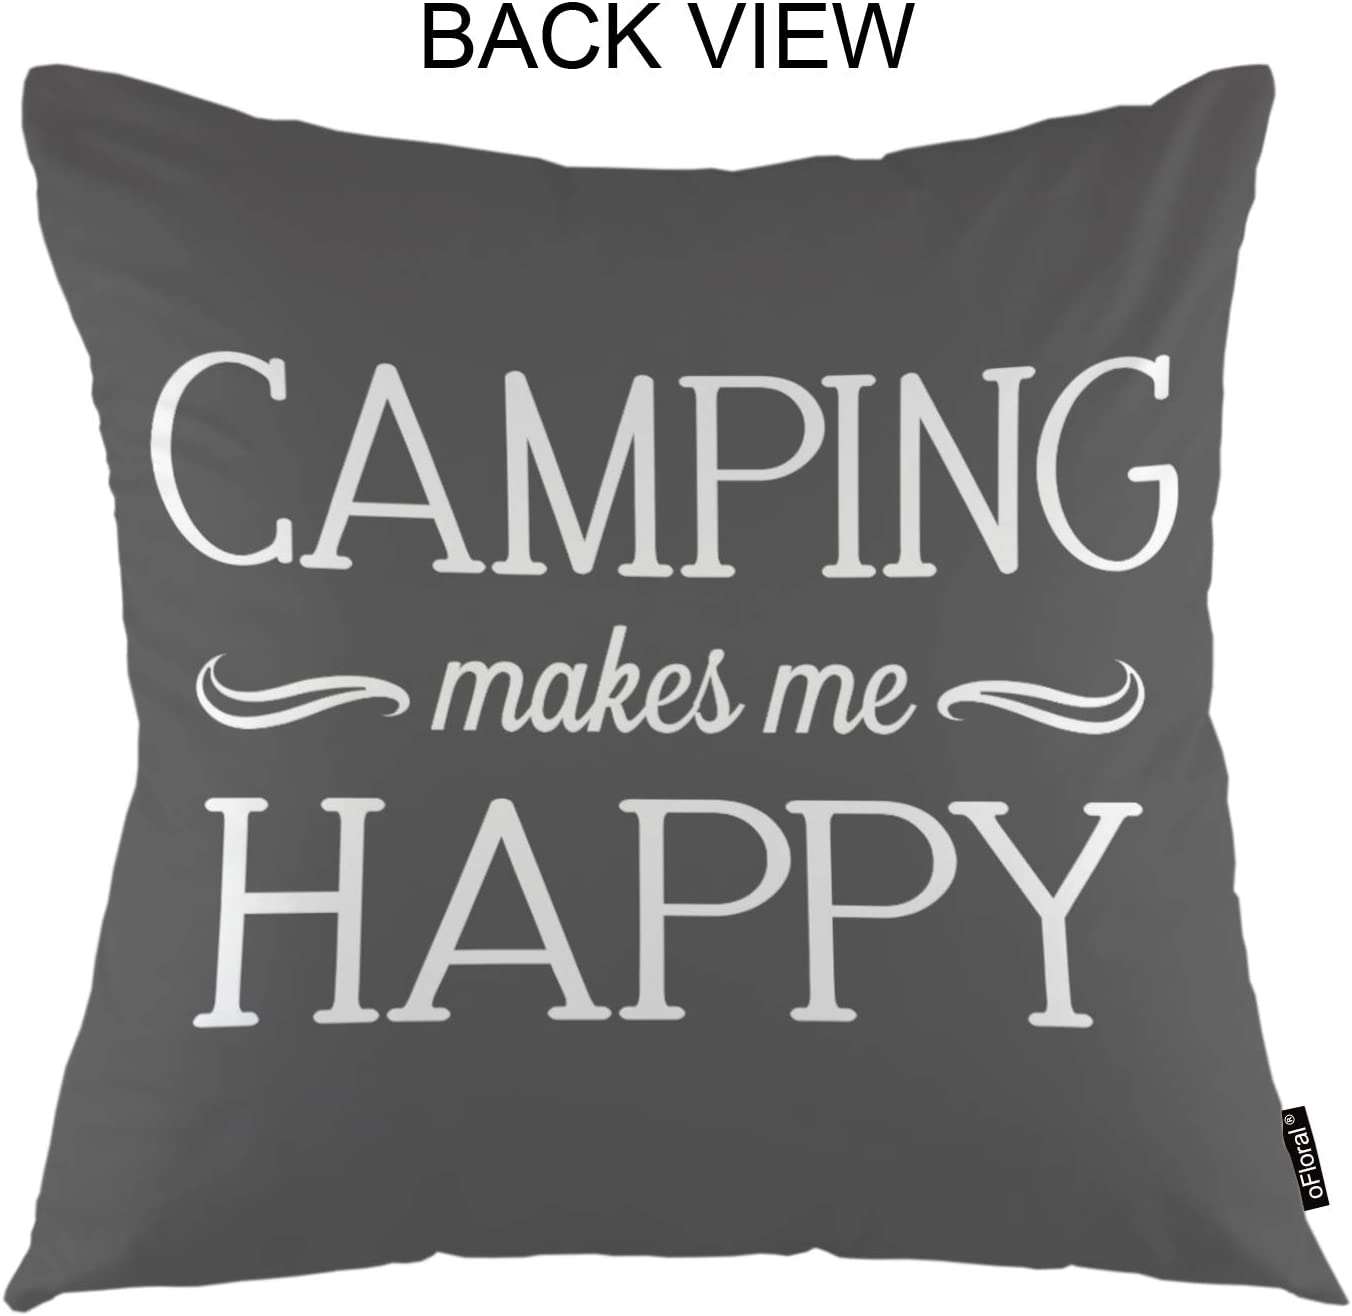 Ofloral Movatational Quote Throw Pillow Covers Camping Makes Me Happy Calligraphy Letter Decorative Square Pillow Case 18 X18 Pillowcase Home Decor For For Sofa Bedroom Livingroom Home Kitchen